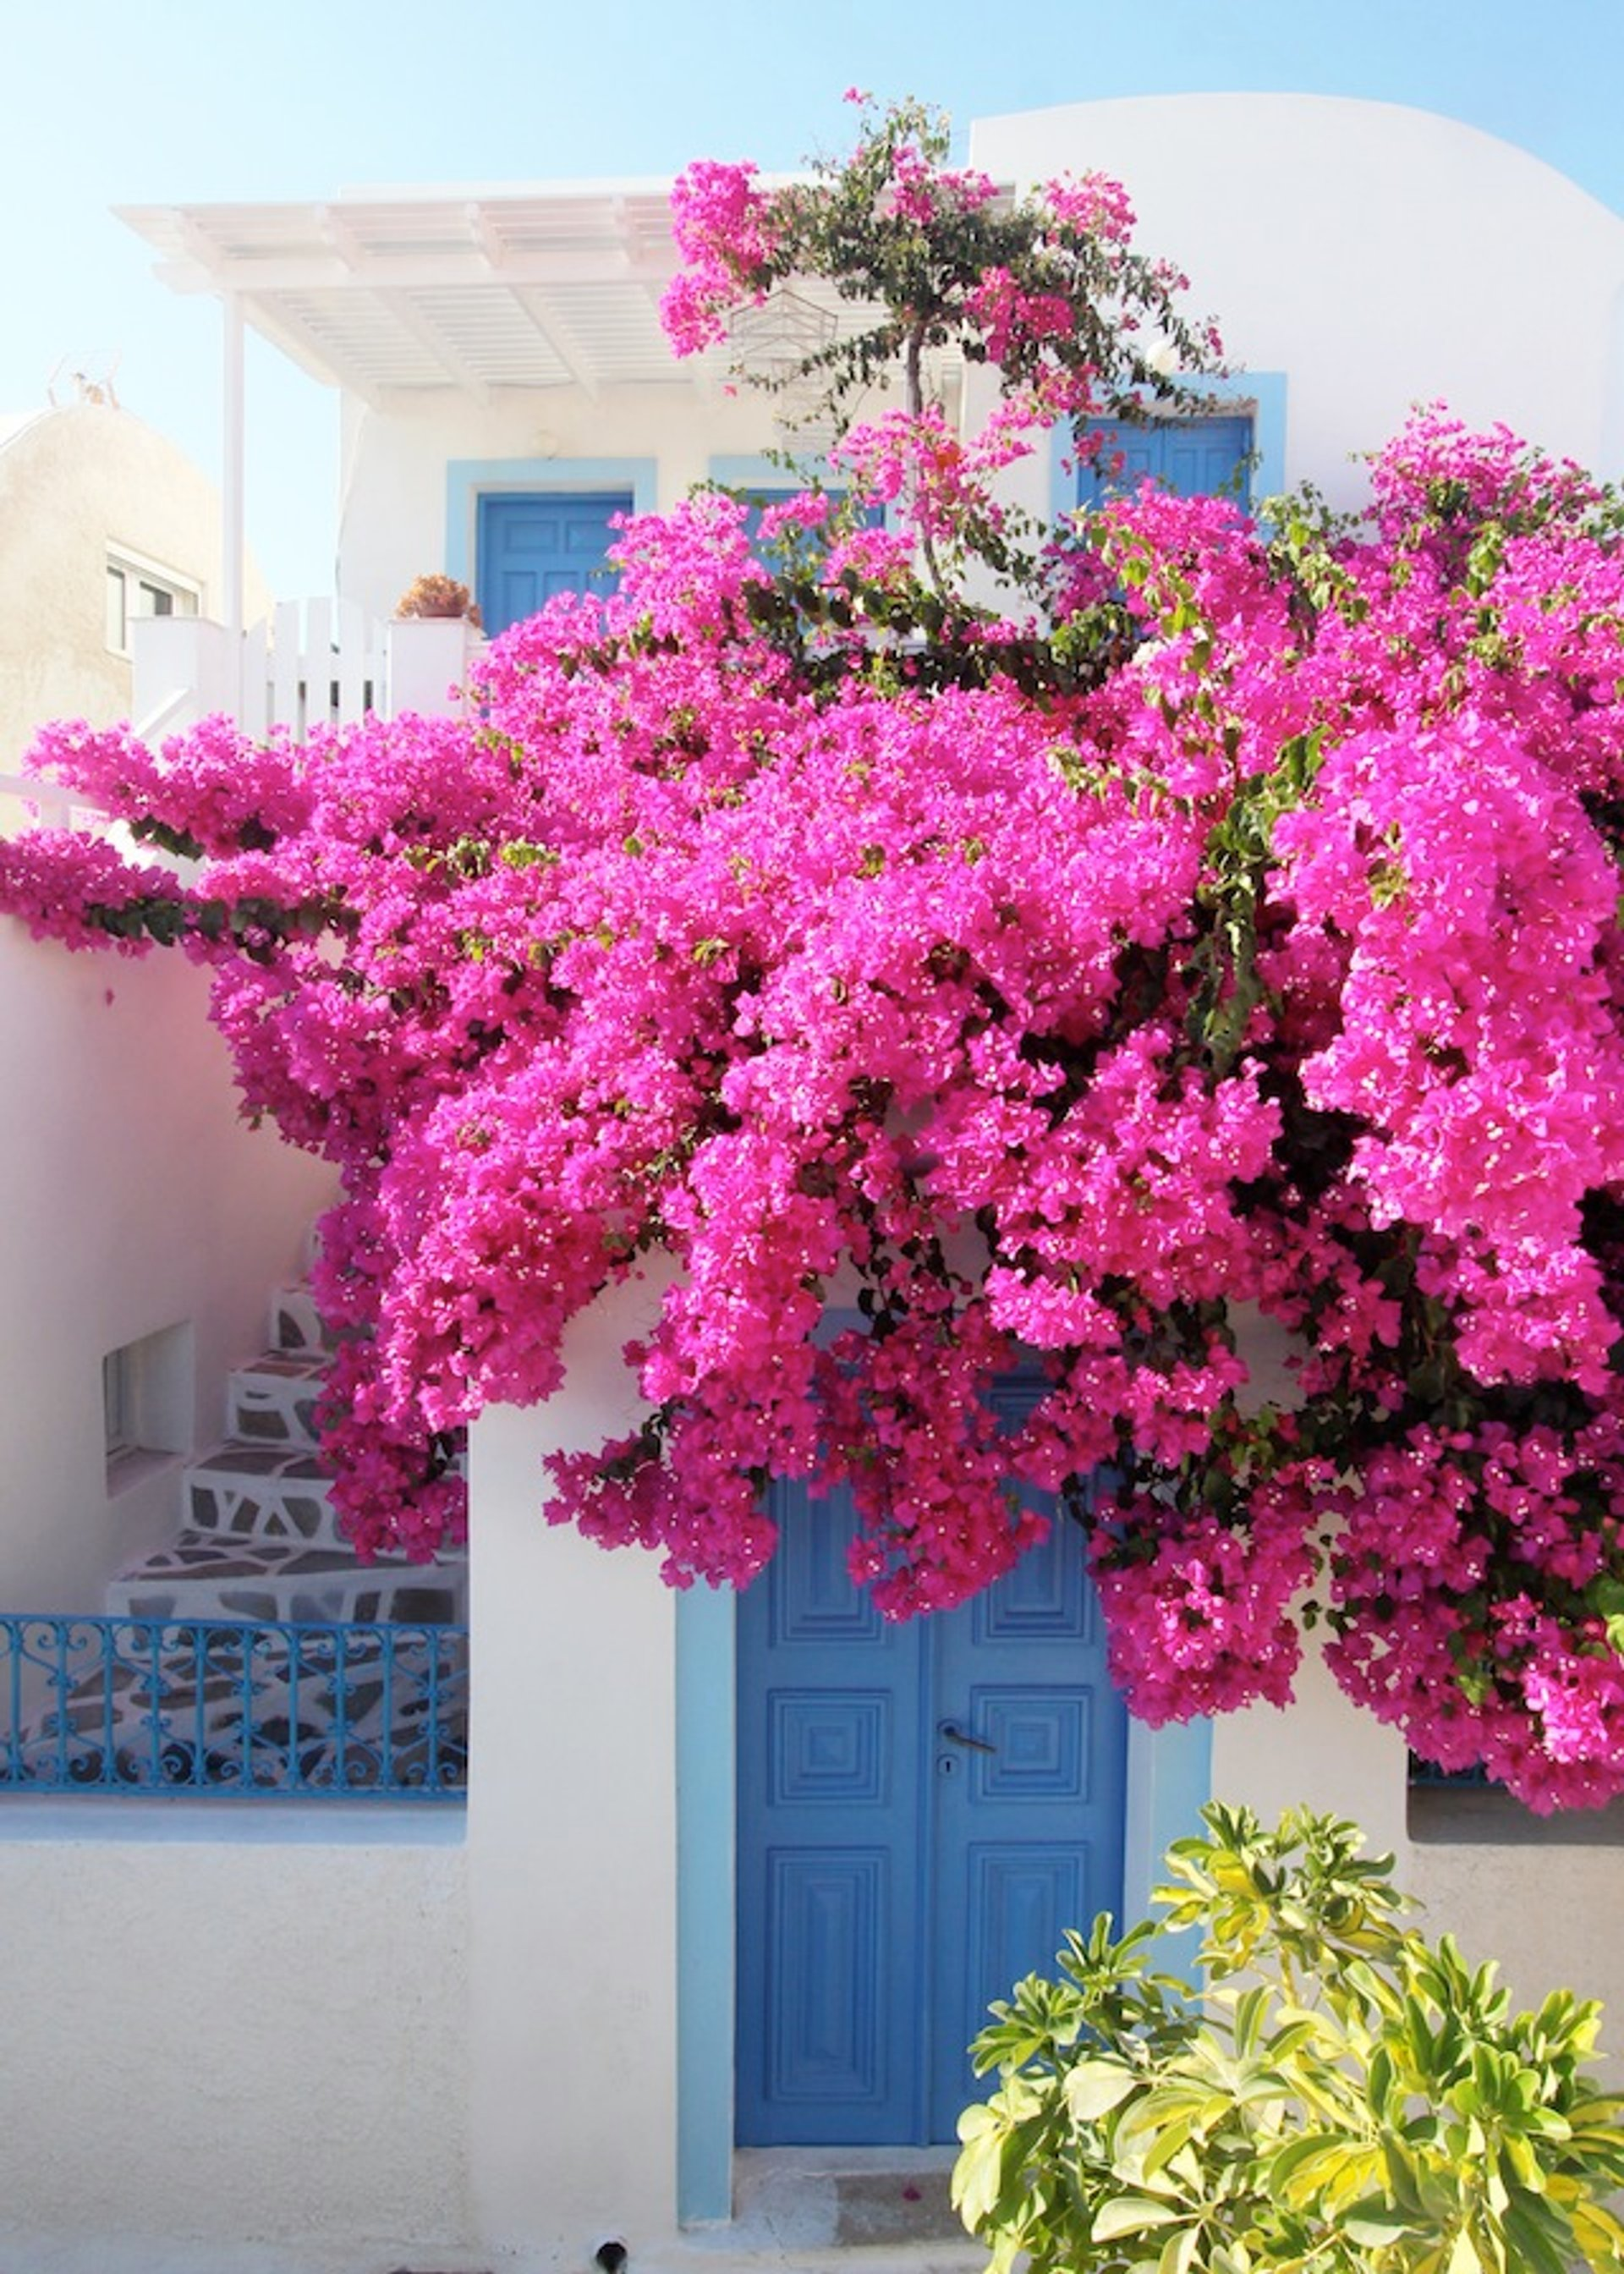 Best time for Fuchsia Bougainvillea Bloom in Santorini 2019